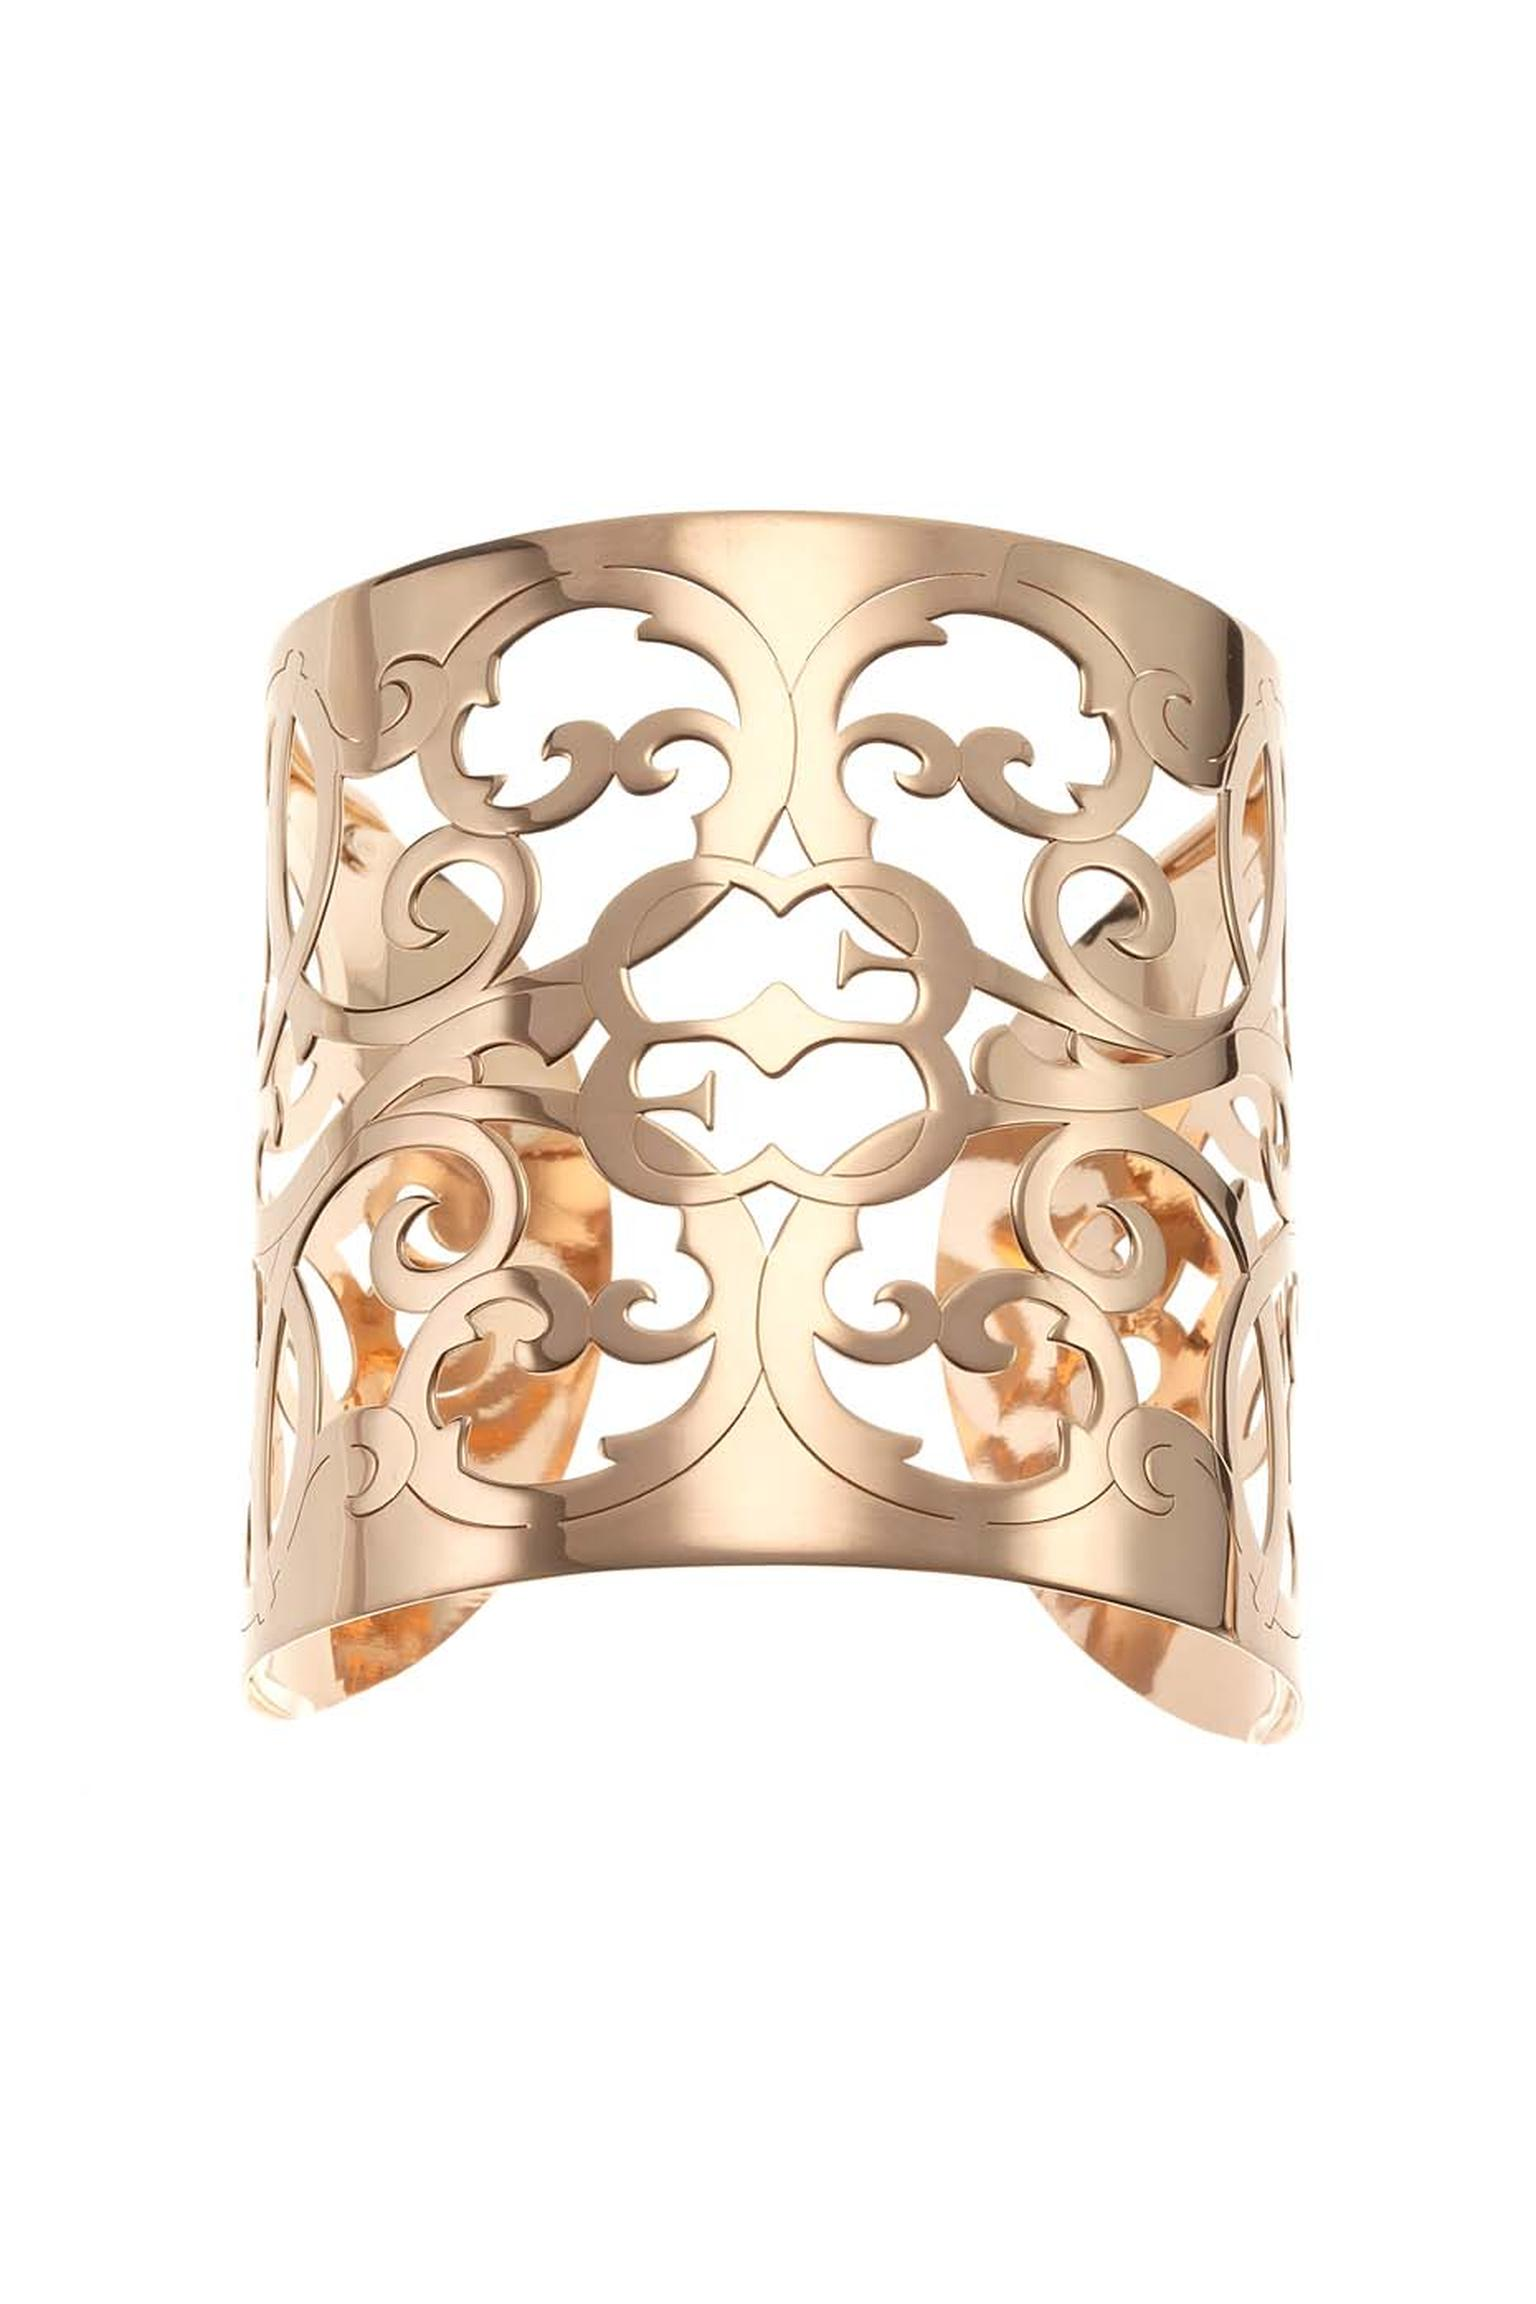 Elena C Celosías collection cuff bracelet in rose gold-plated silver (395€).